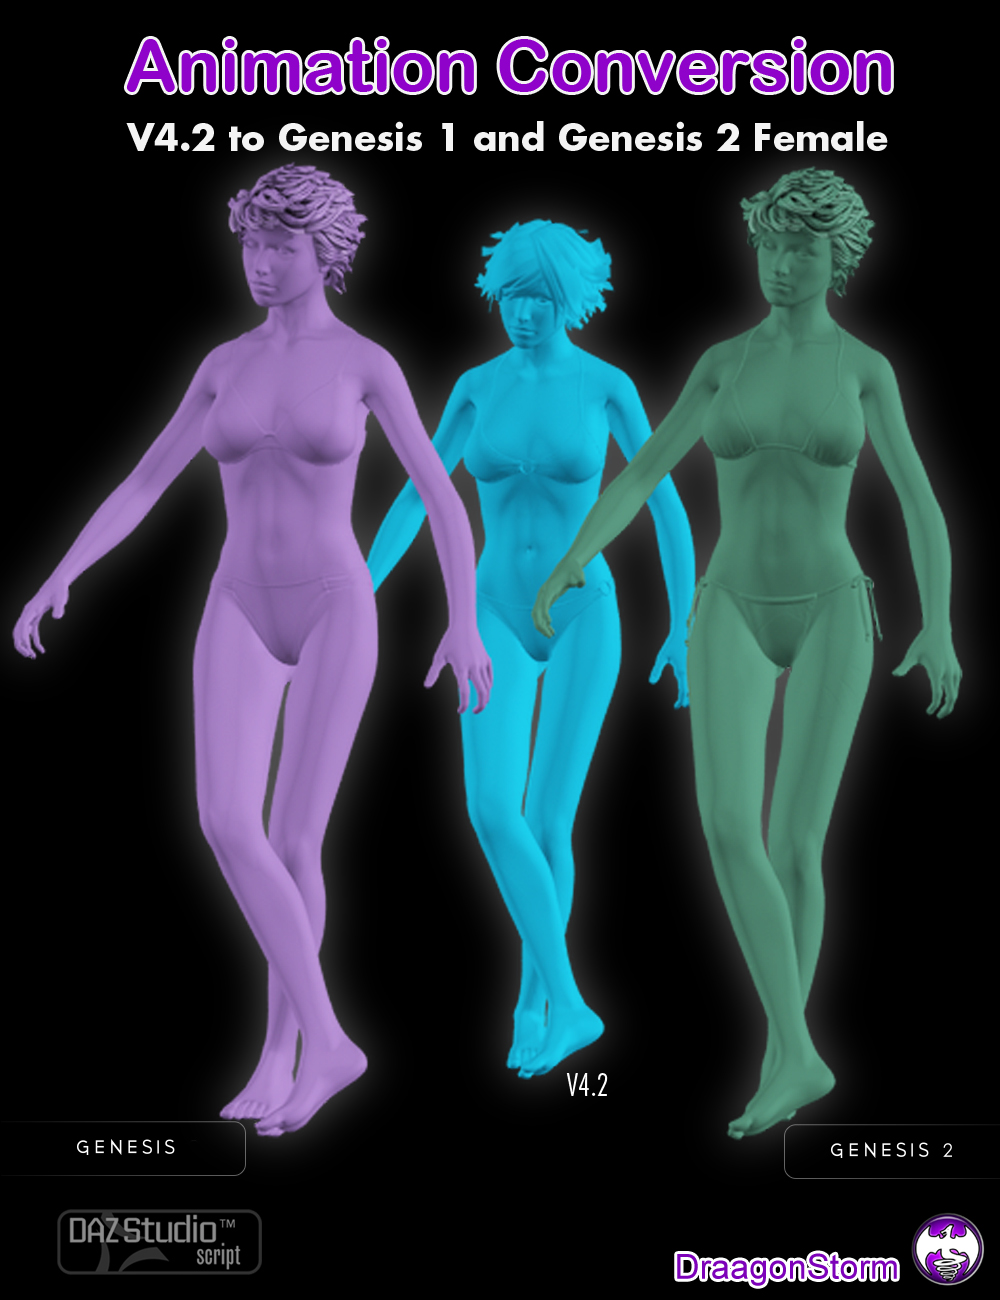 Animation Conversion V4.2 to Genesis and Genesis 2 Female by: DraagonStorm, 3D Models by Daz 3D